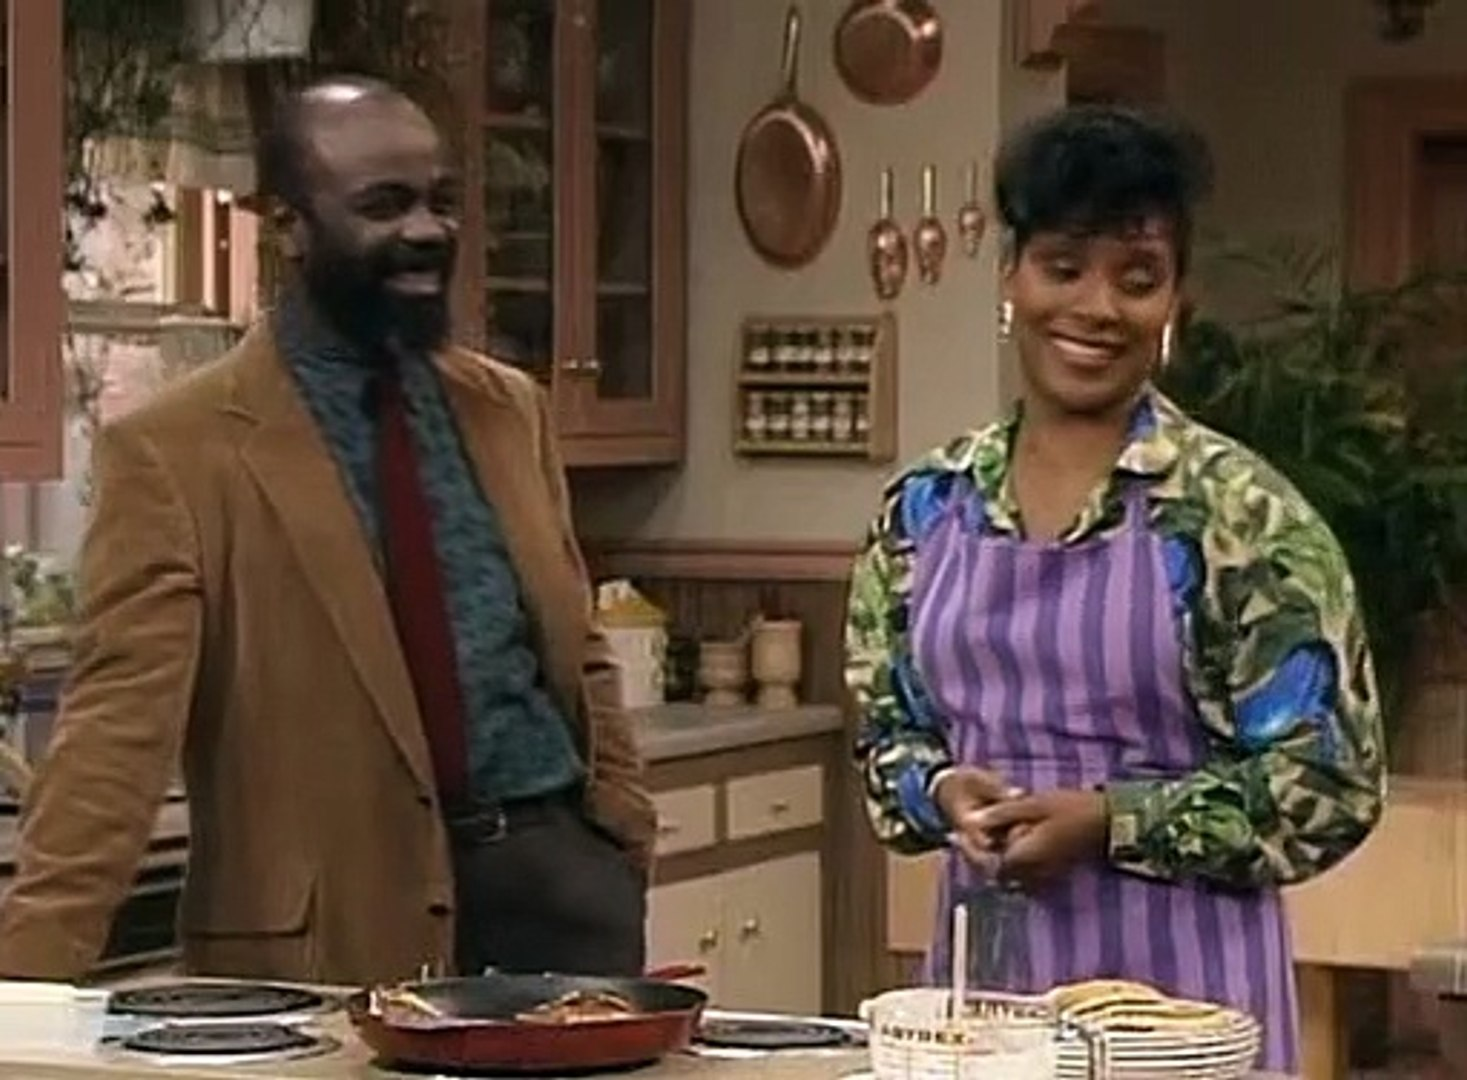 The Cosby Show S07E02 Bird İn The Hand